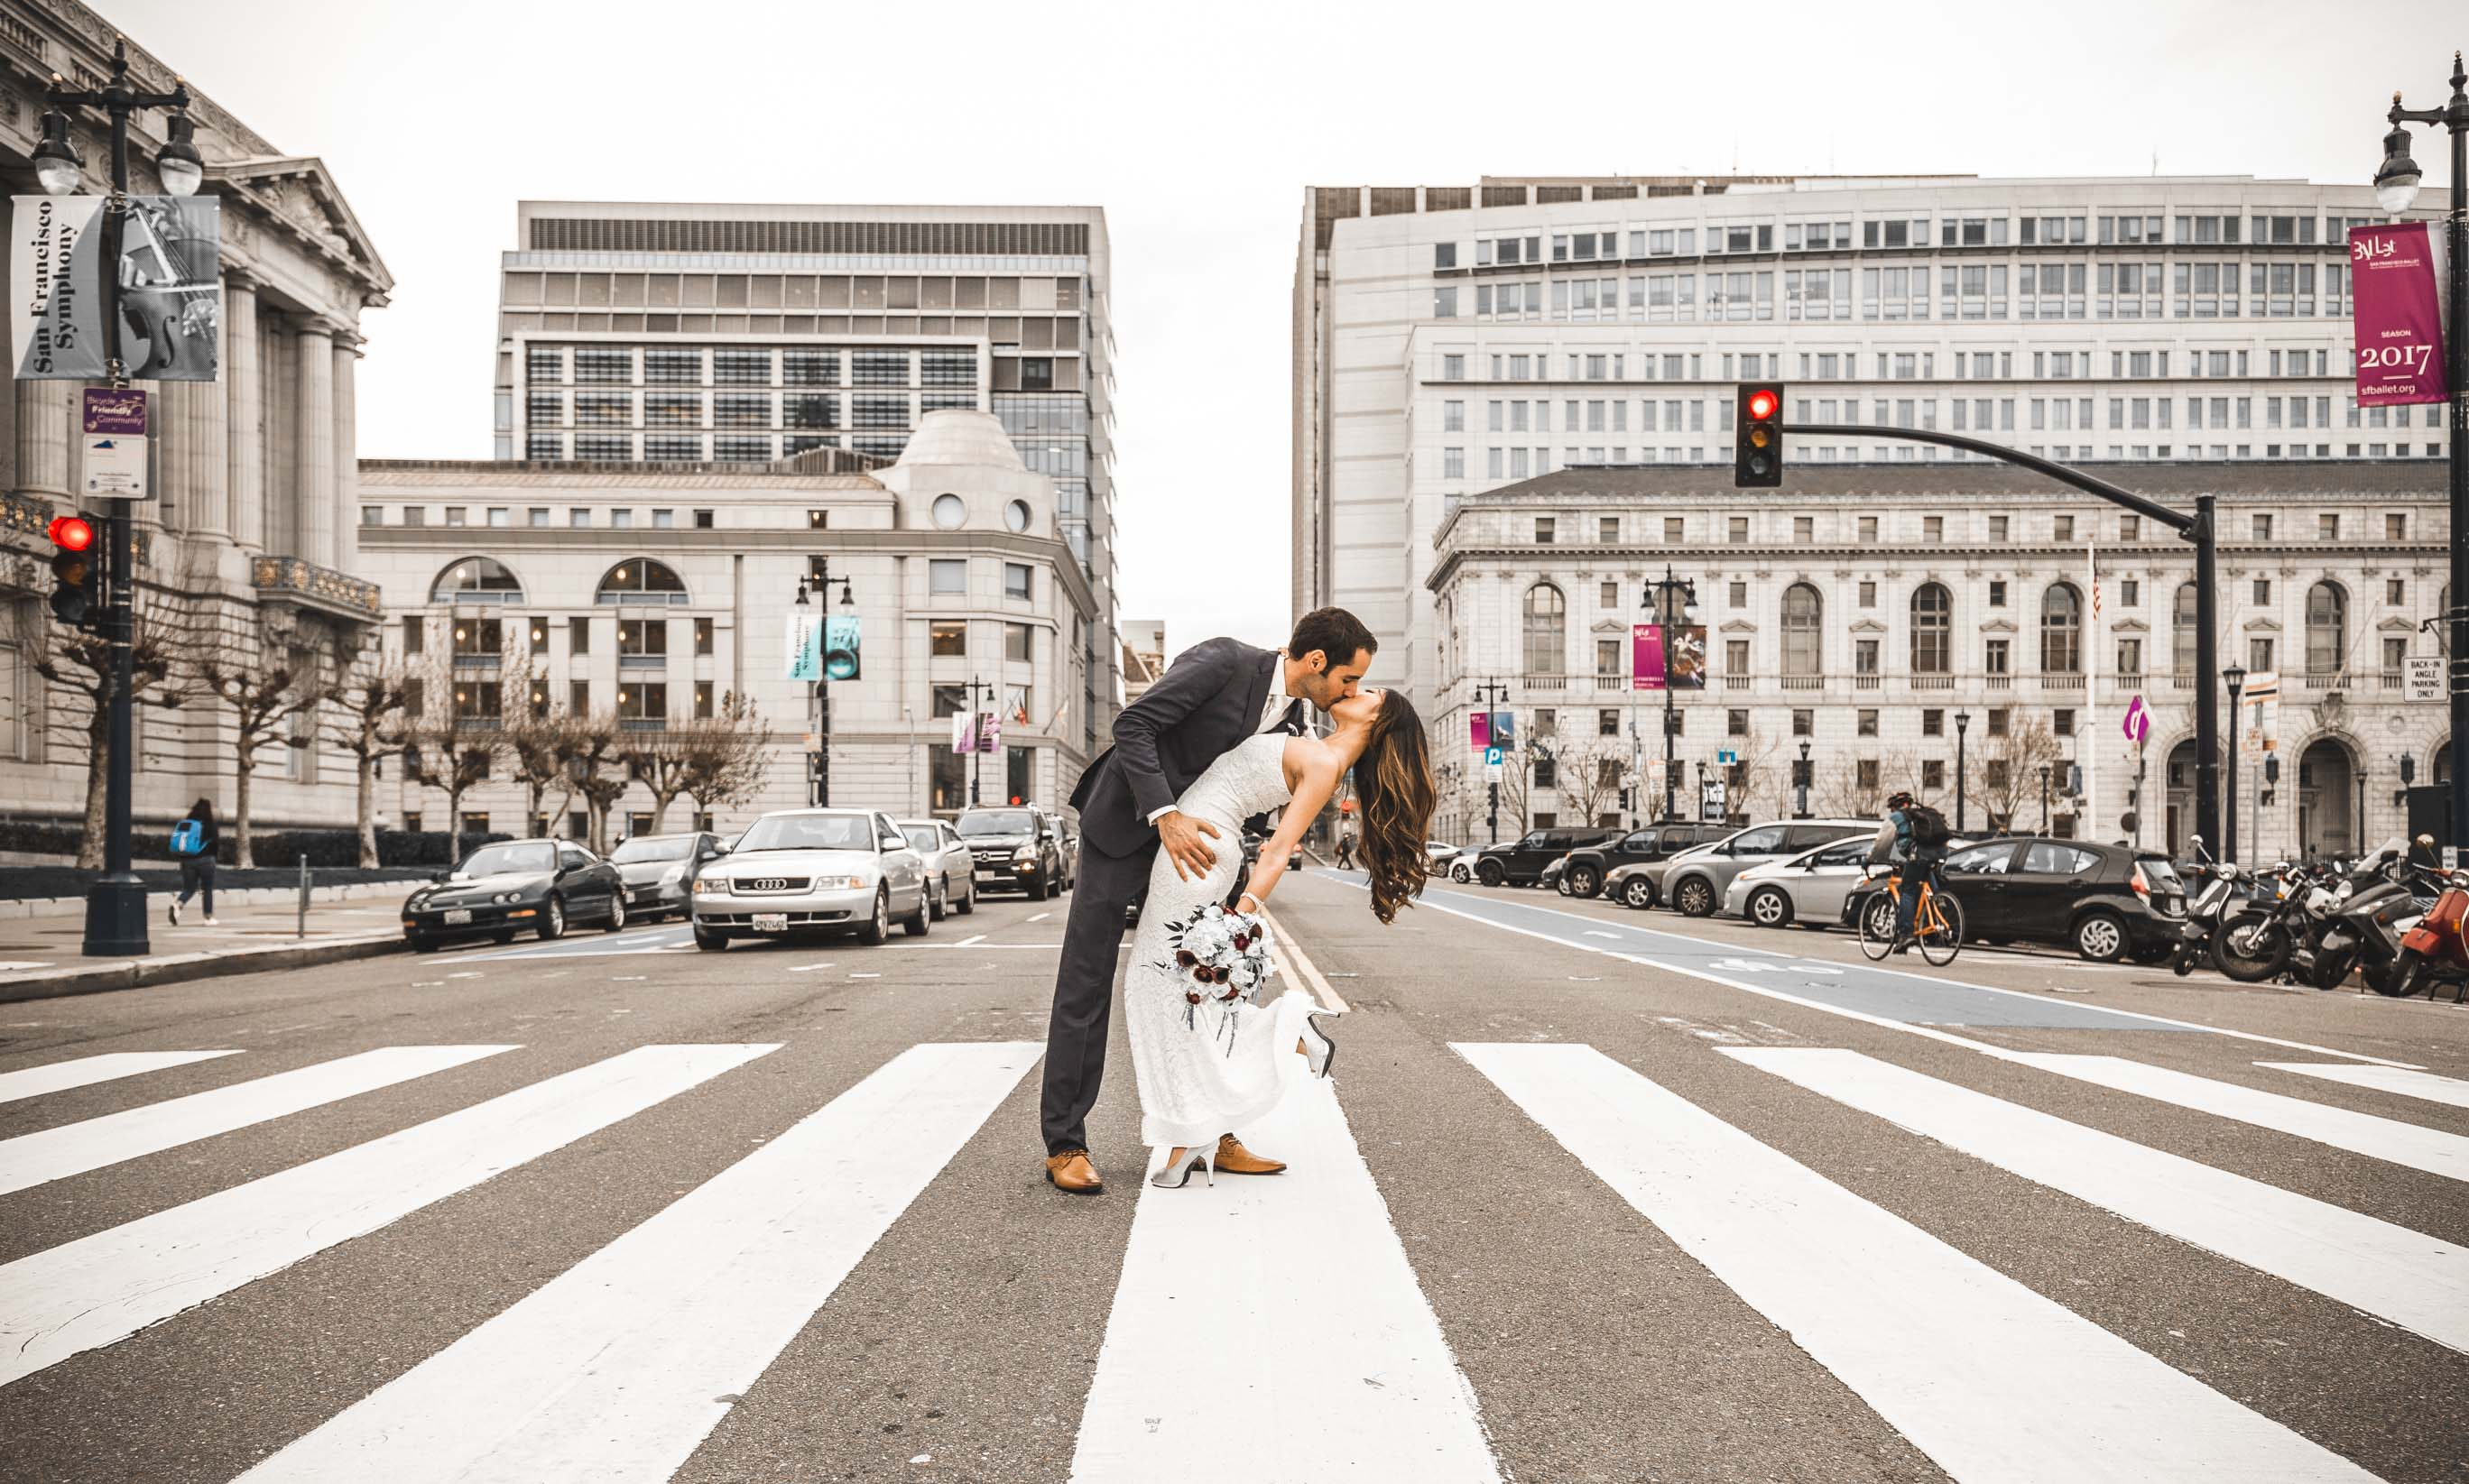 couple passionately kissing in front of city hall on the road crosswalk